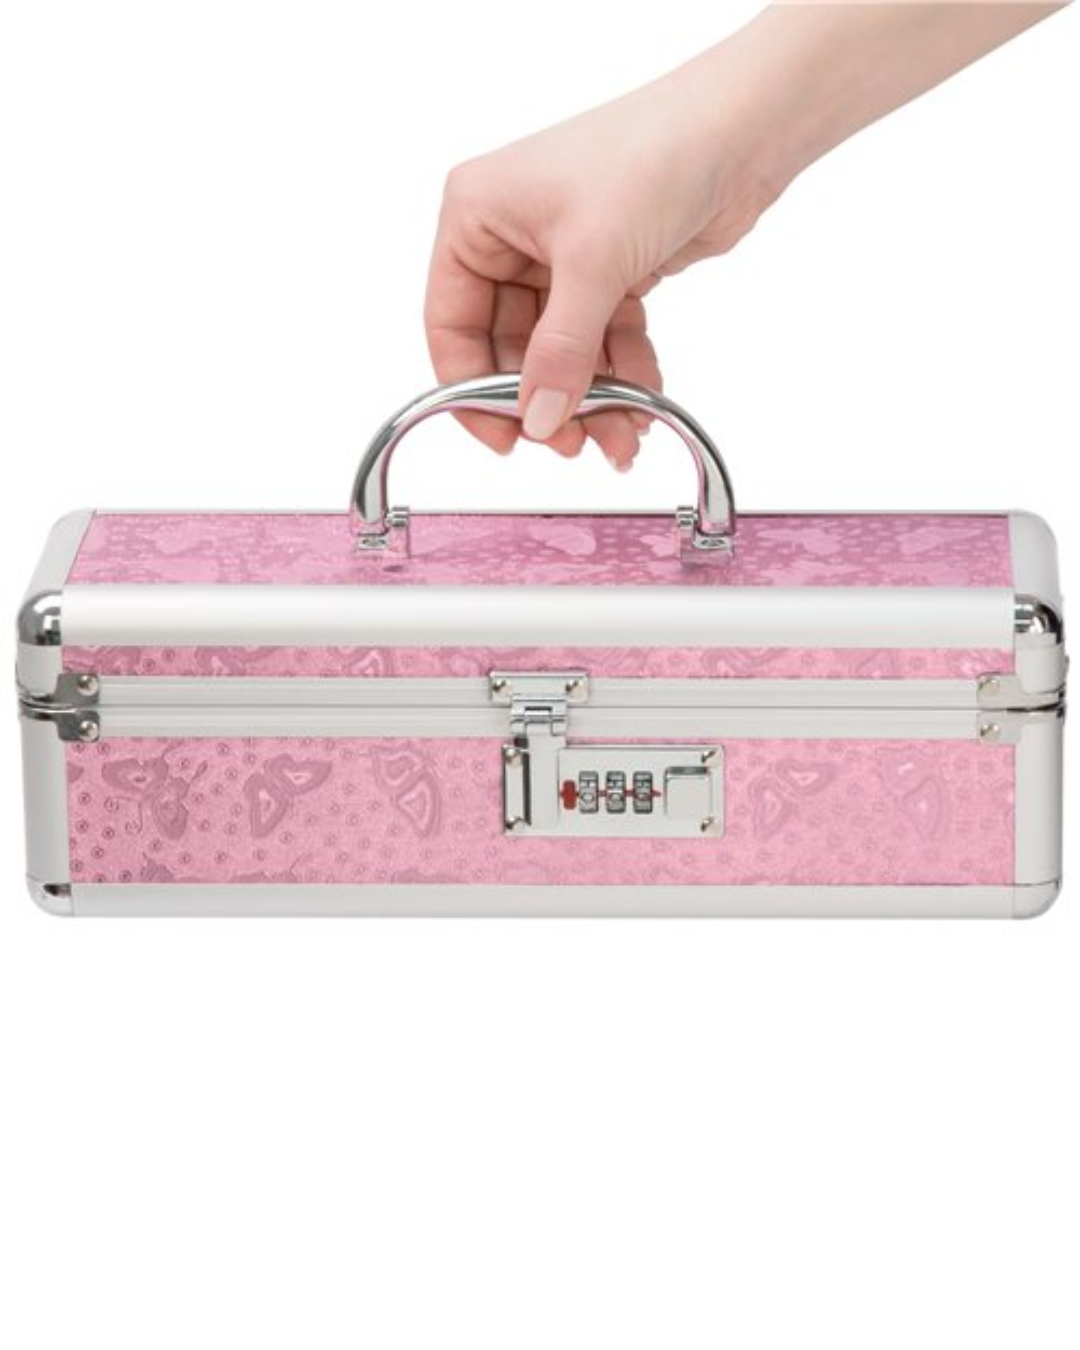 Lockable Vibrator Case Small - Pink hand holding the case